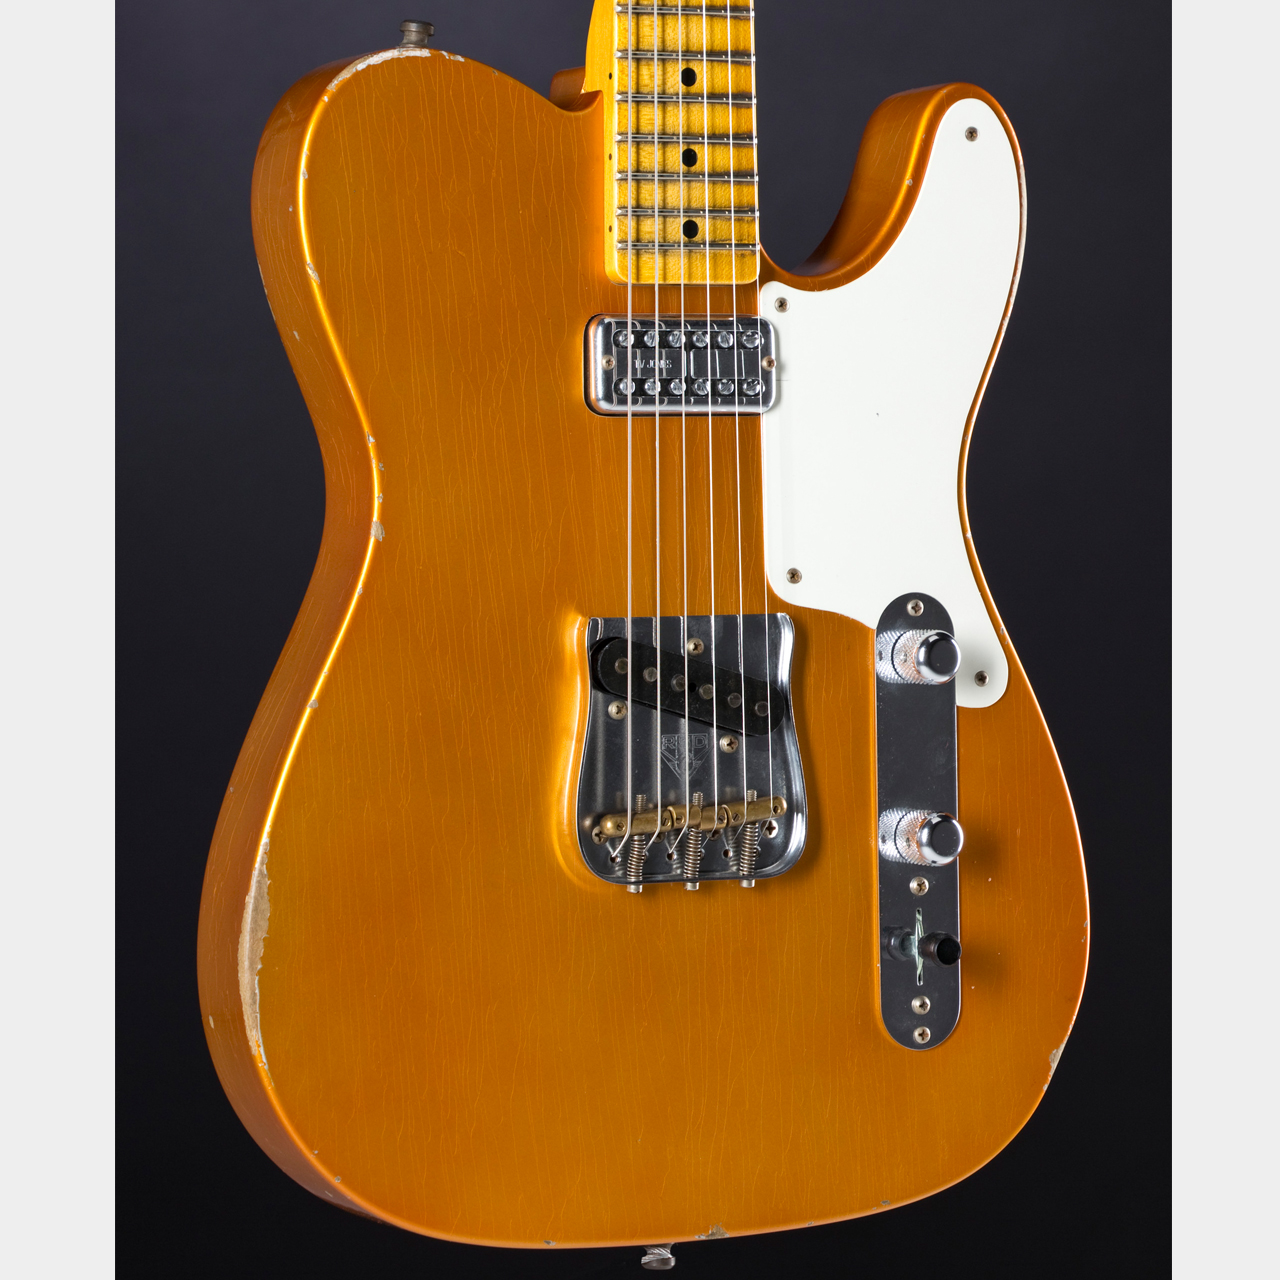 FENDER Limited Edition Relic Tele Caballo Tono Faded Candy Tangerine Body Detail